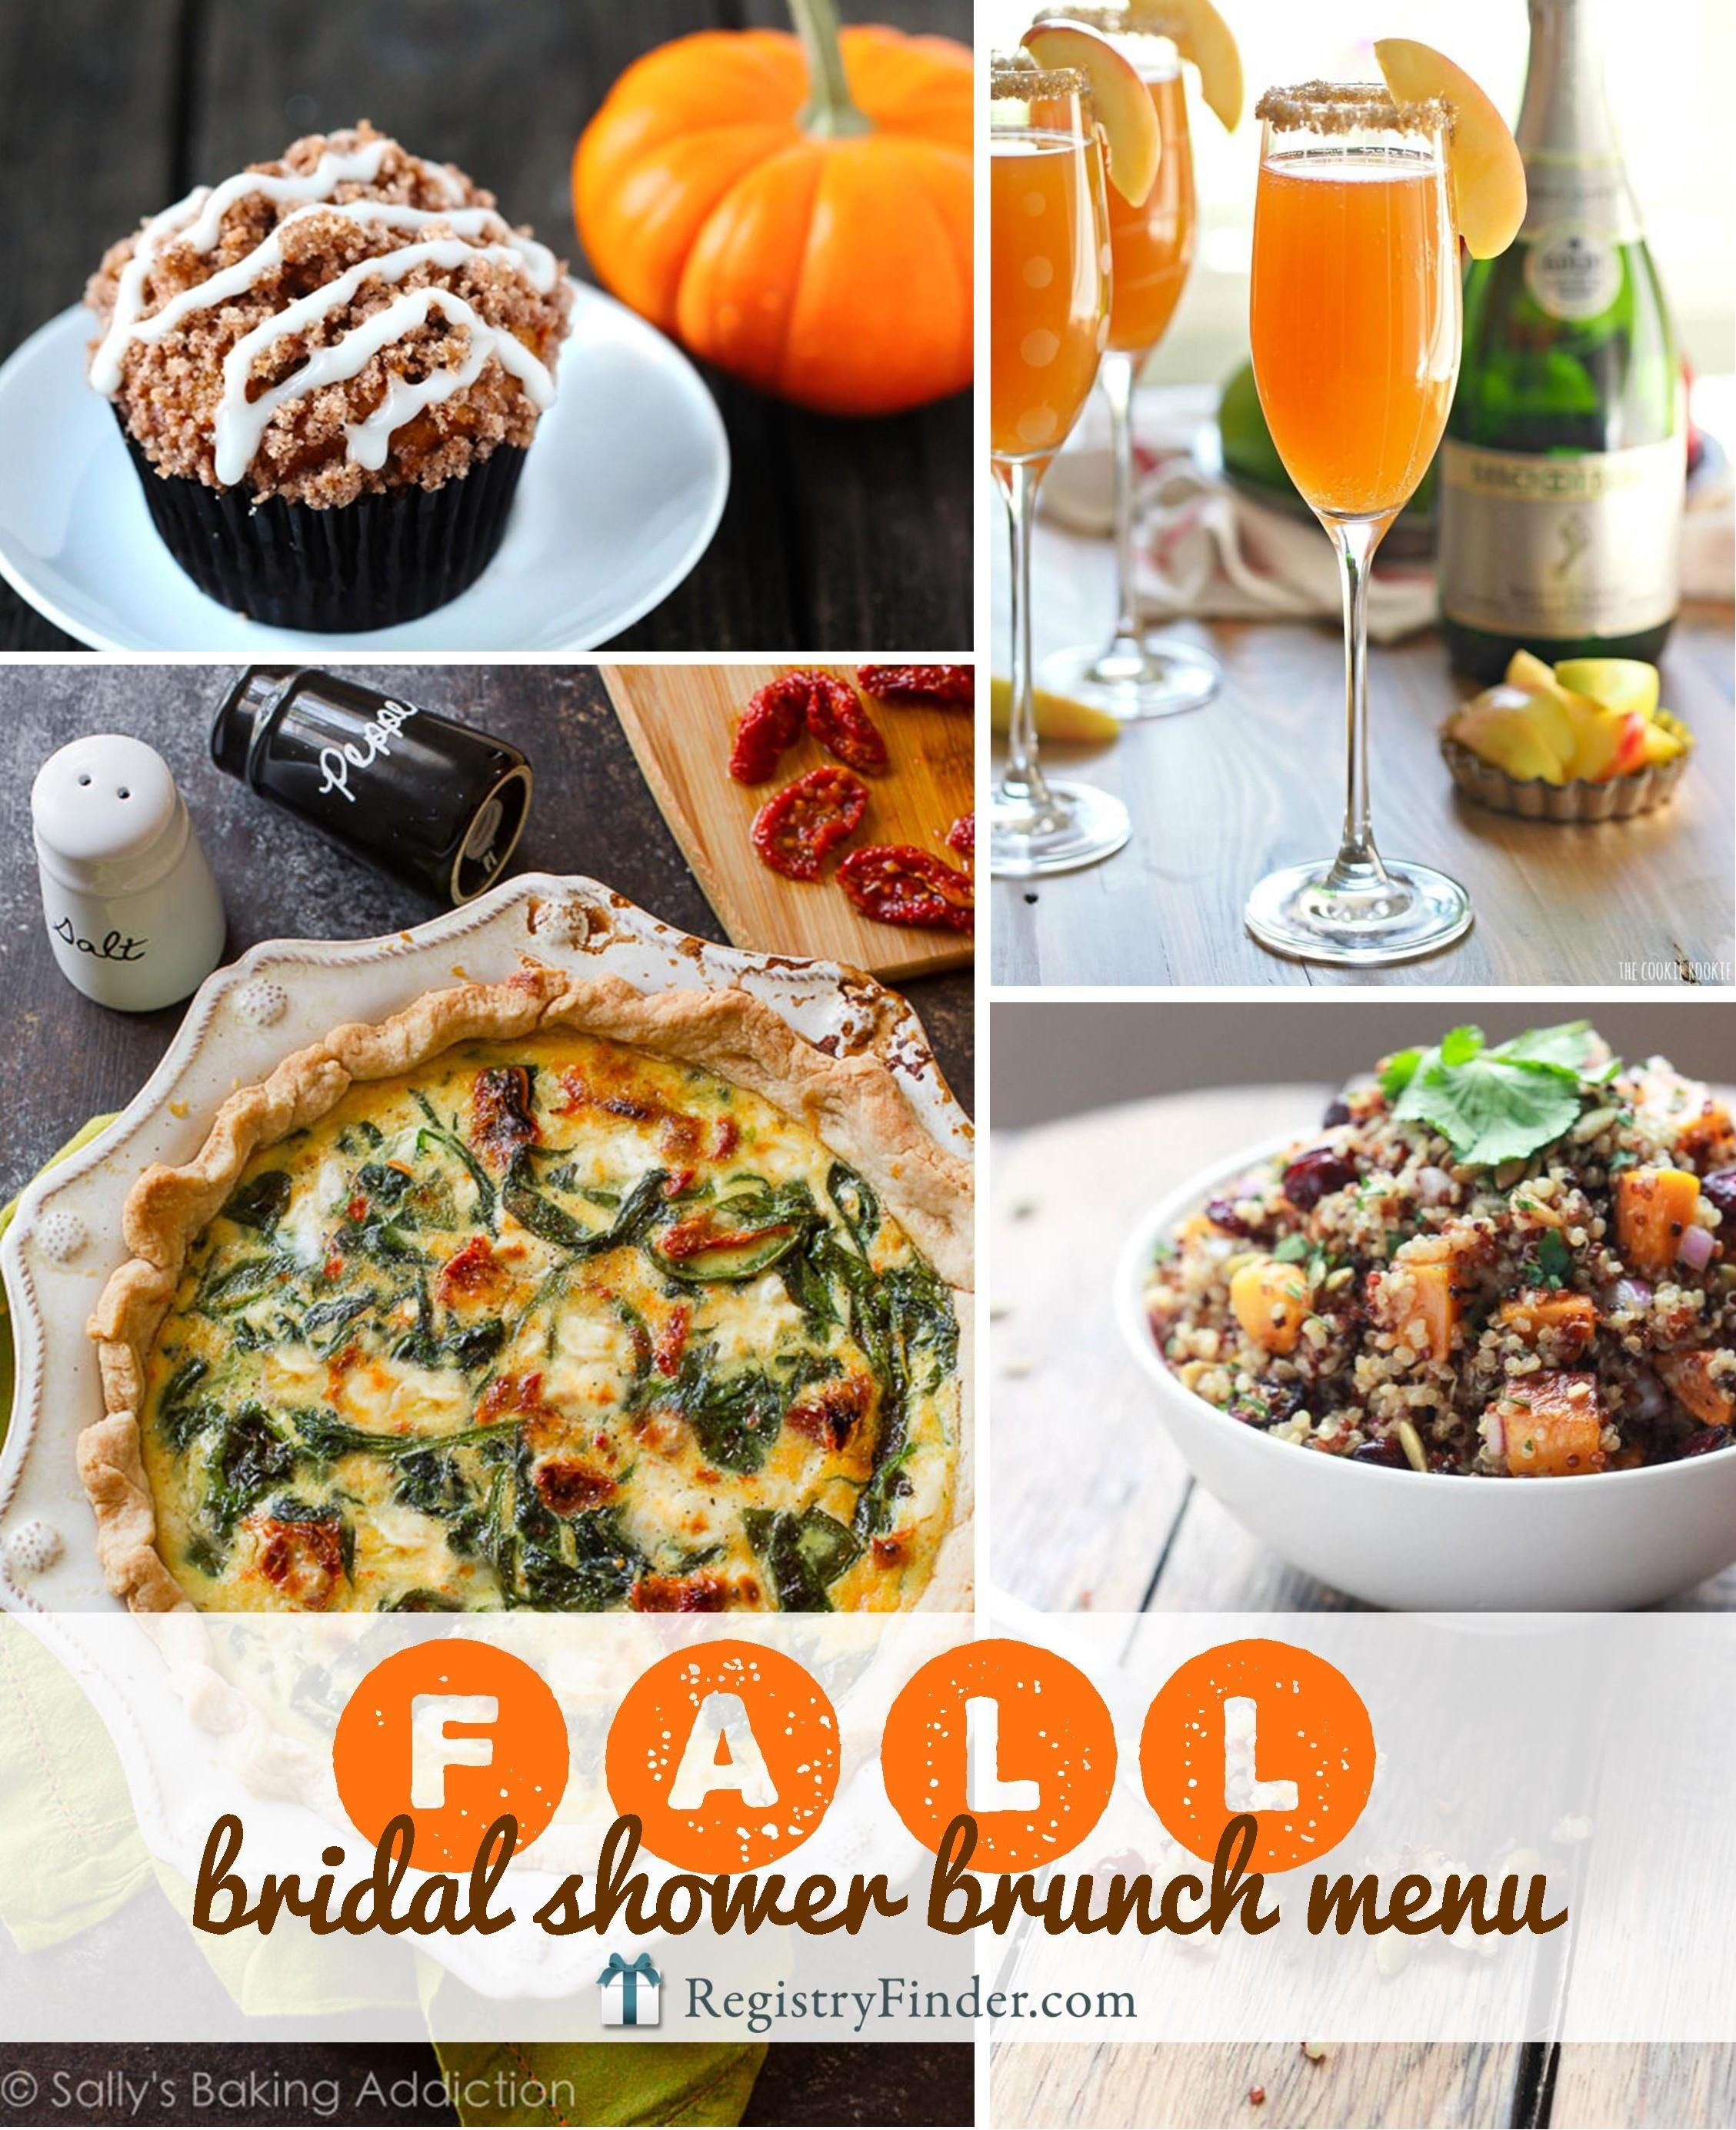 fall bridal shower menu are you planning a bridal shower with your besties check out our fall wedding shower brunch menu minimum effort maximum